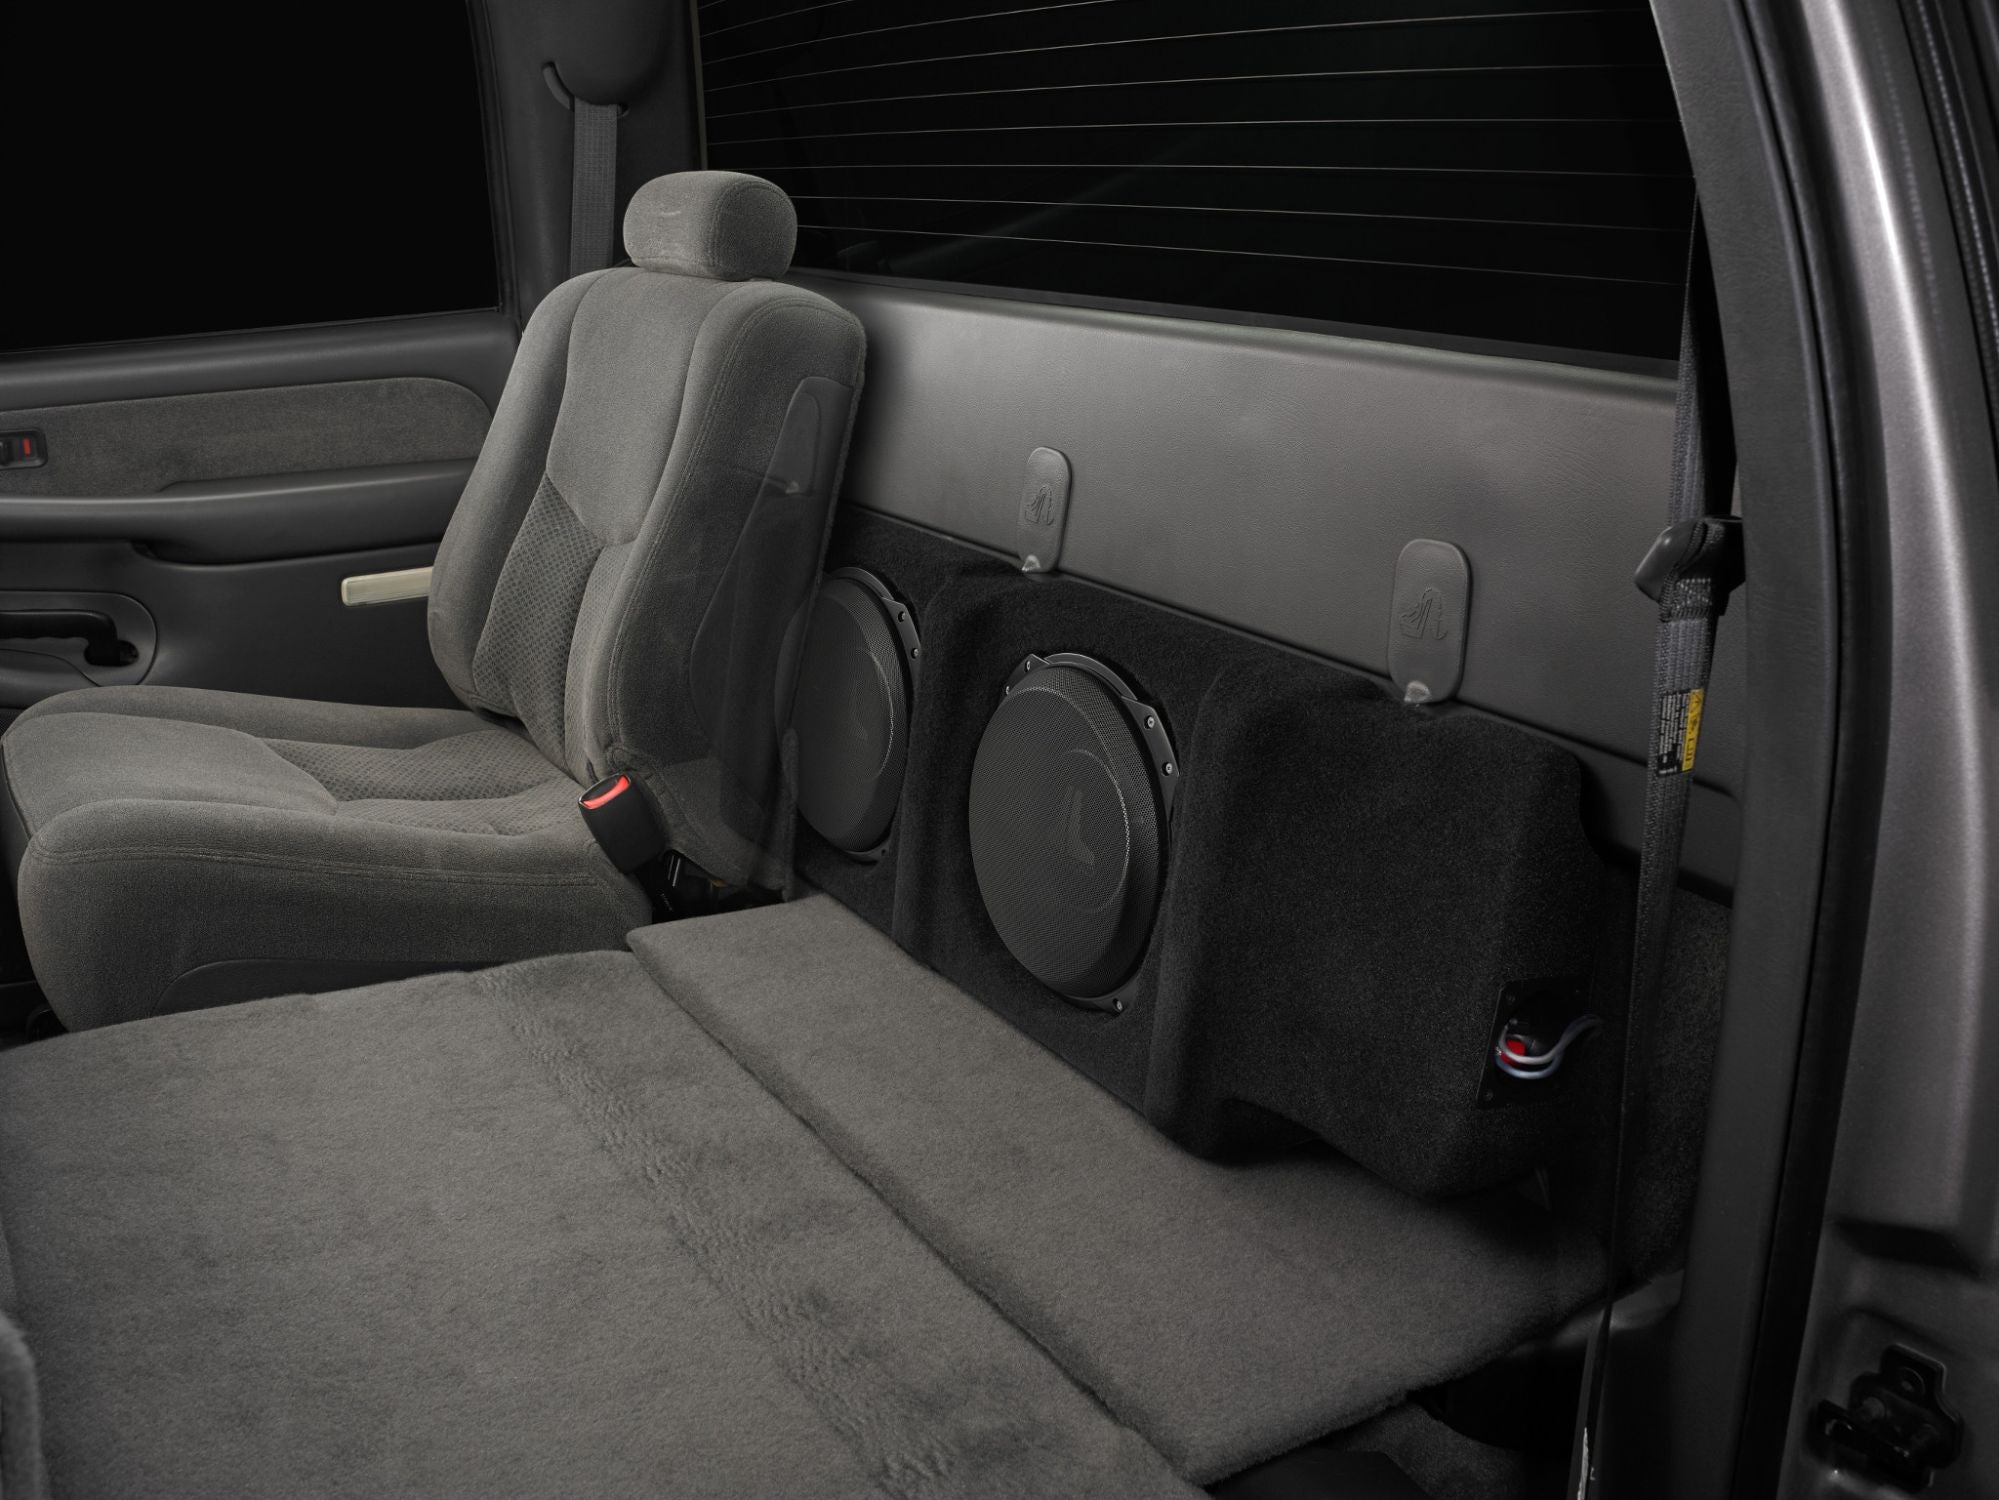 SB-GM-SLVCRW-10TW3 Stealthbox Installed in Vehicle